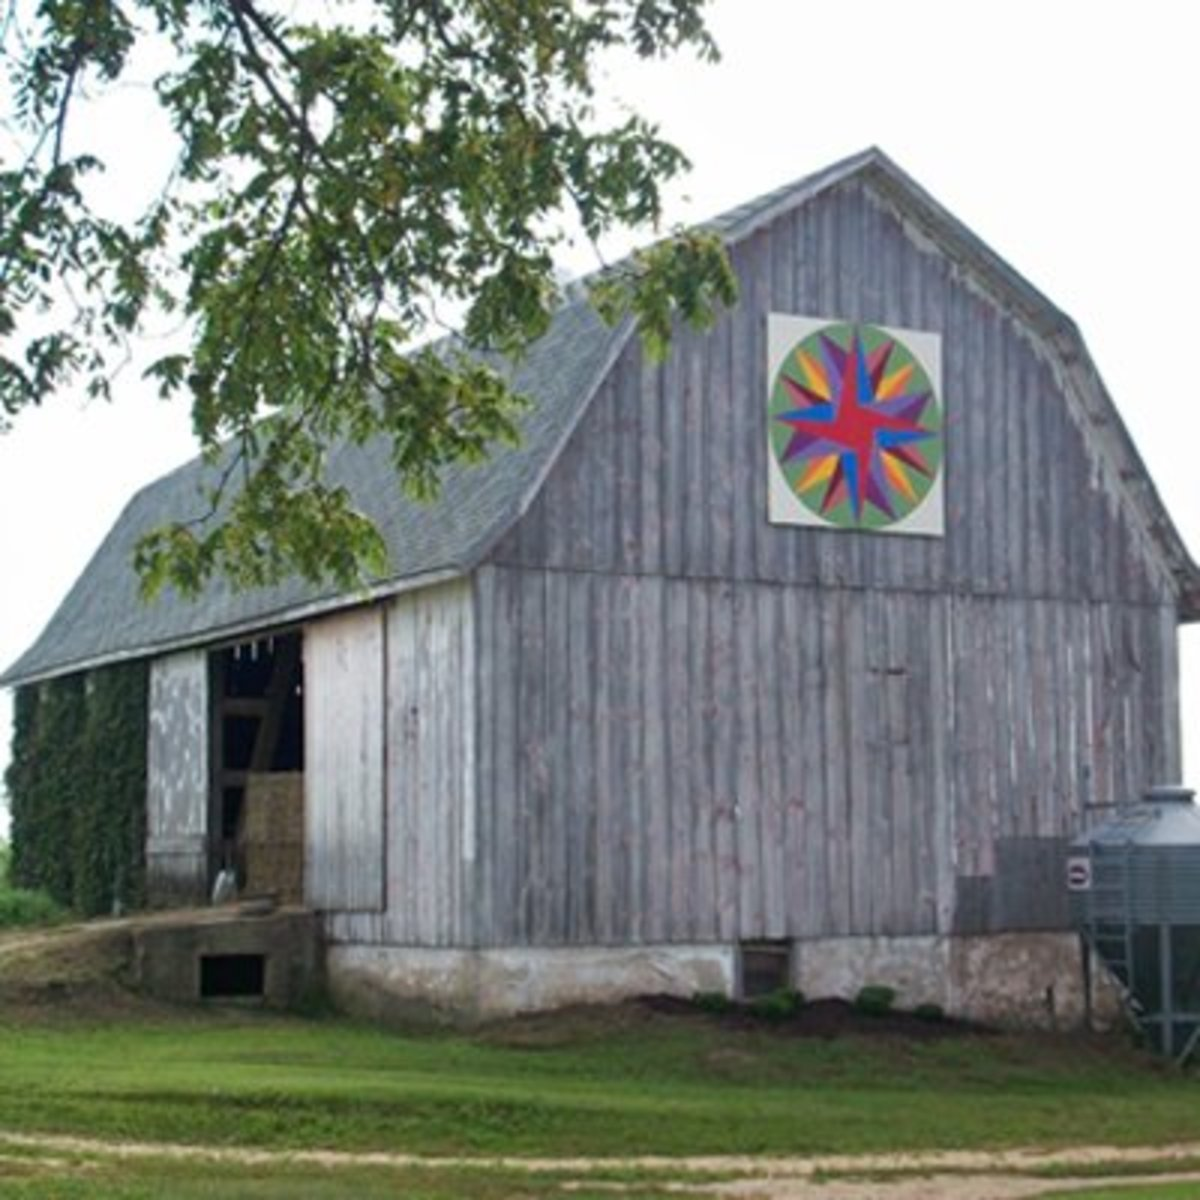 Barn Quilts in Rural America